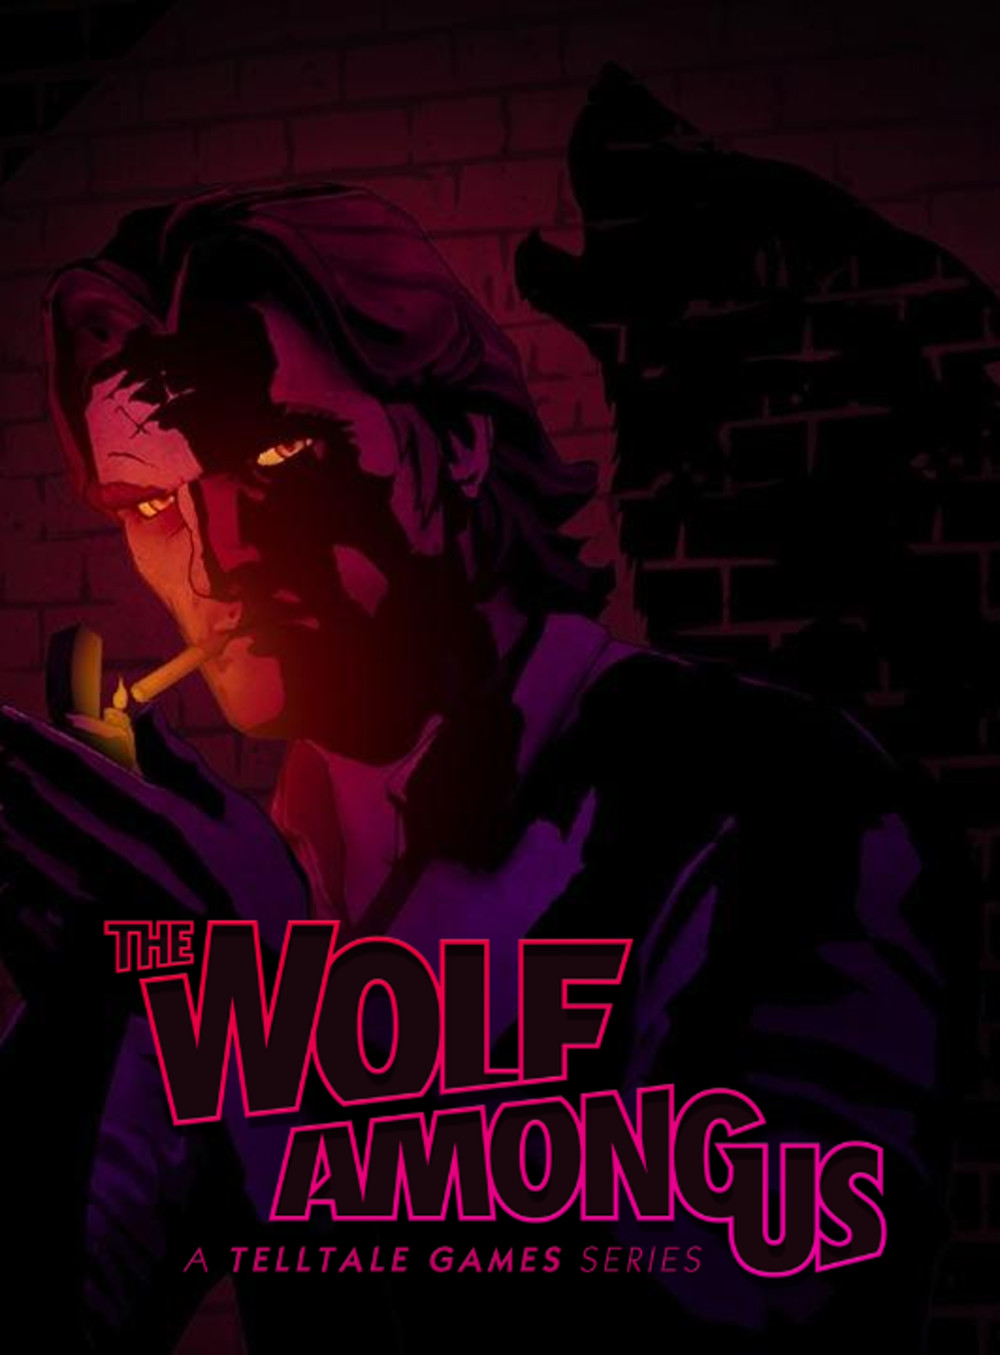 The Wolf Among Us - Episode 1 and 2